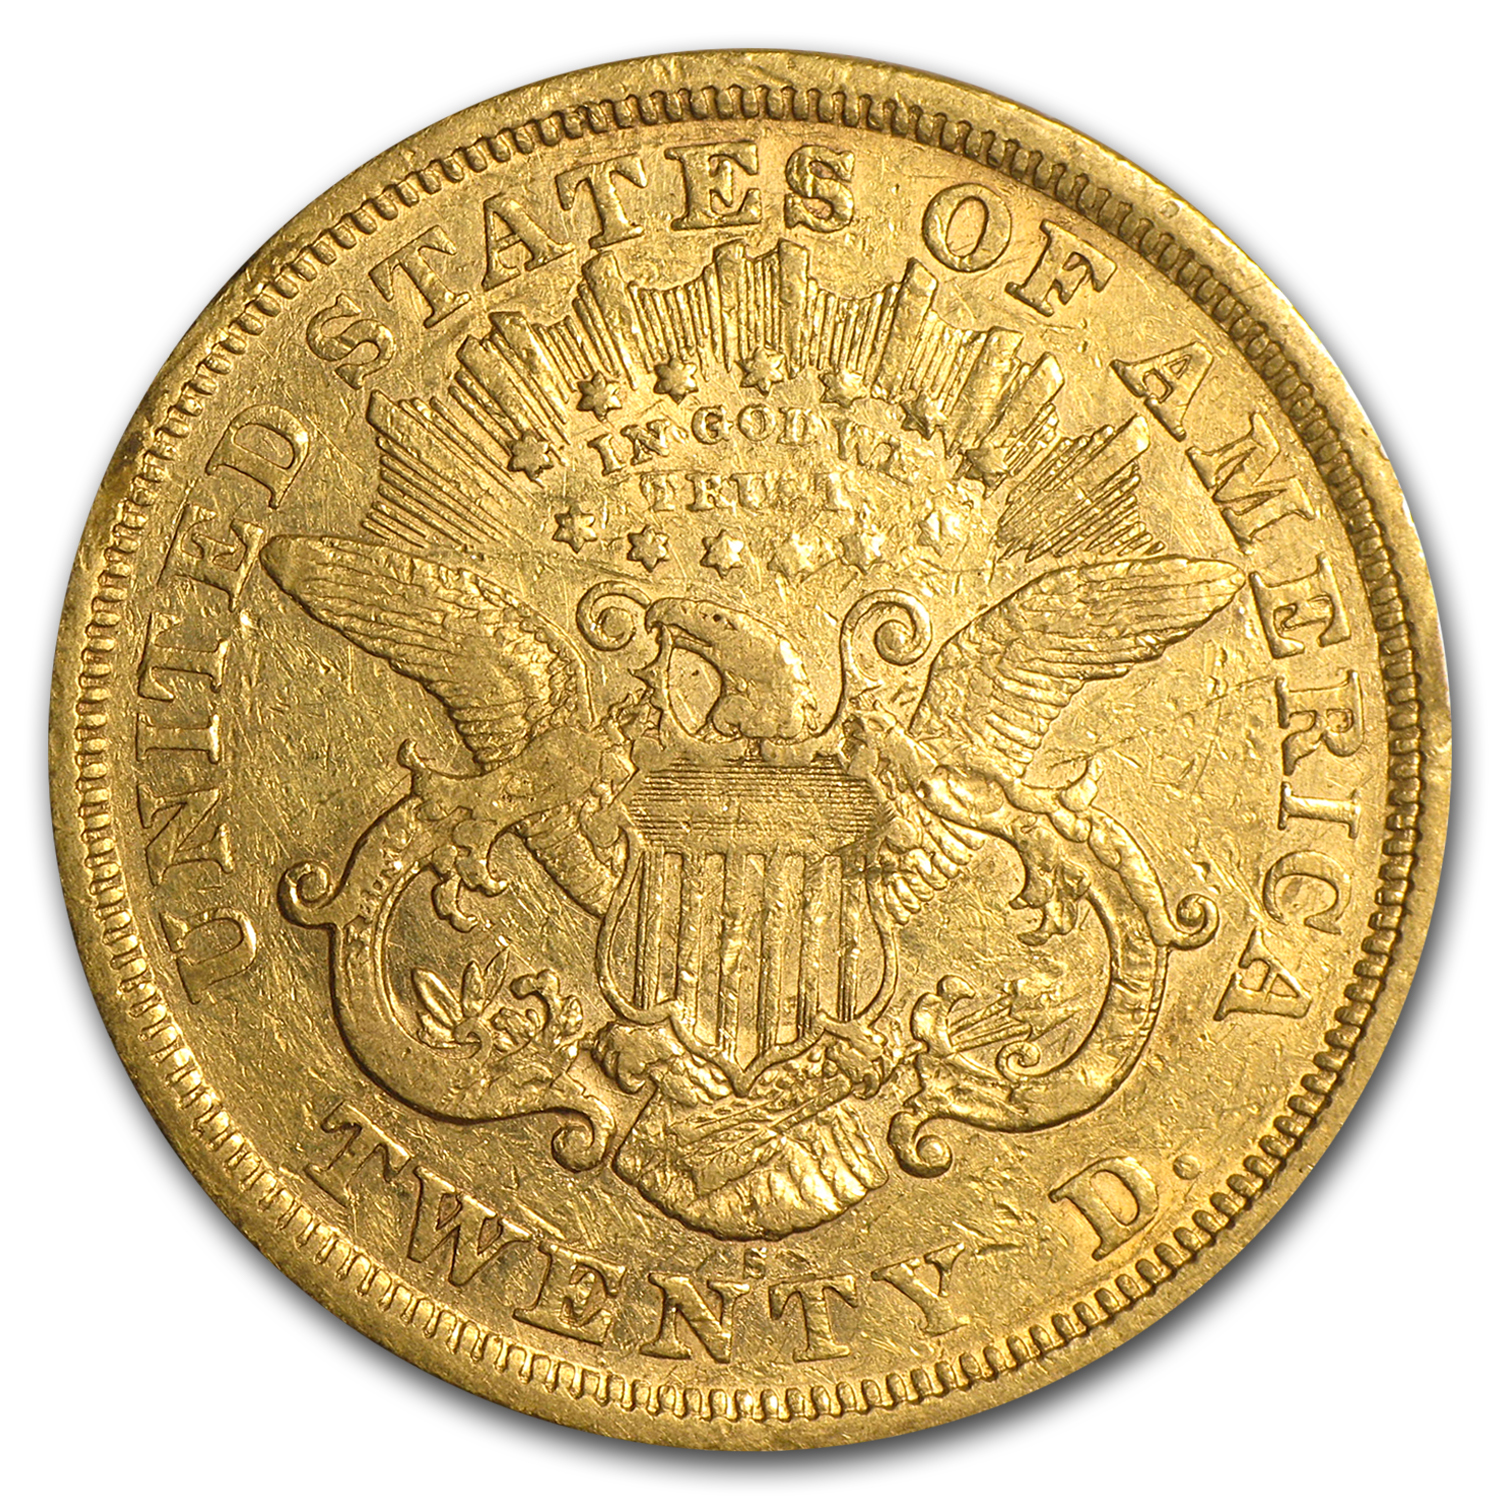 1866-1876 $20 Liberty Gold Double Eagle Type 2 (Cleaned)